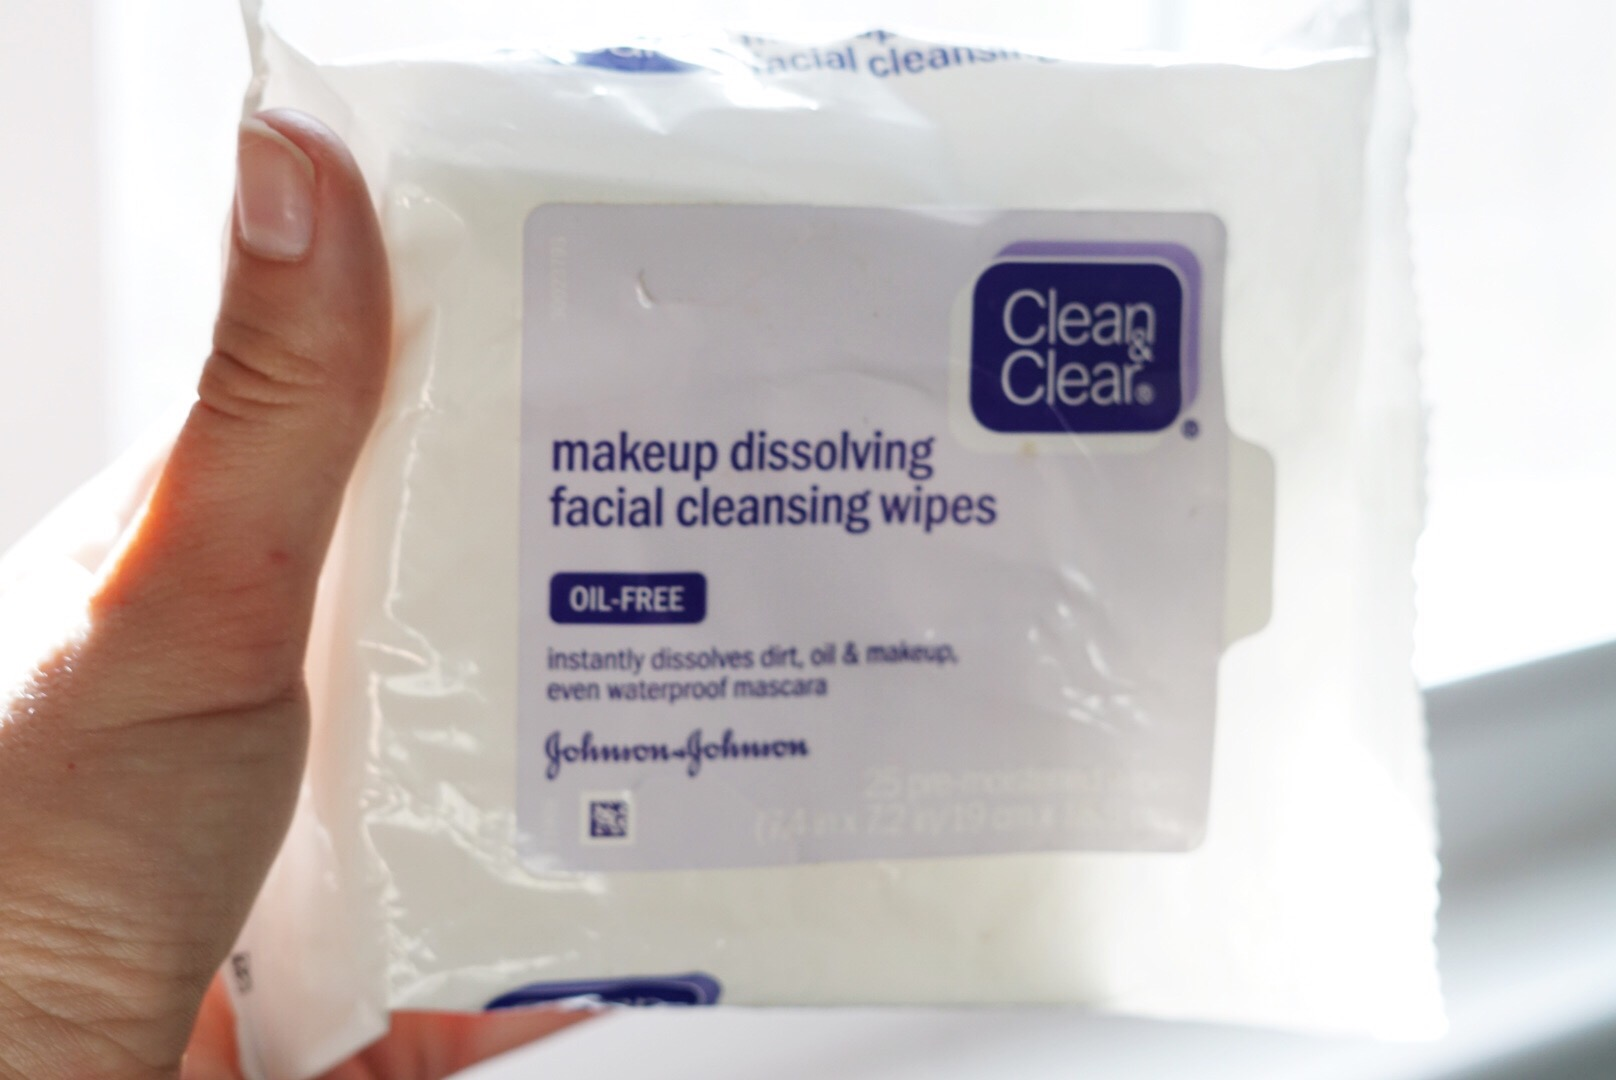 Neutrogena Light Therapy Acne Mask and Clean & Clear makeup dissolving wipes